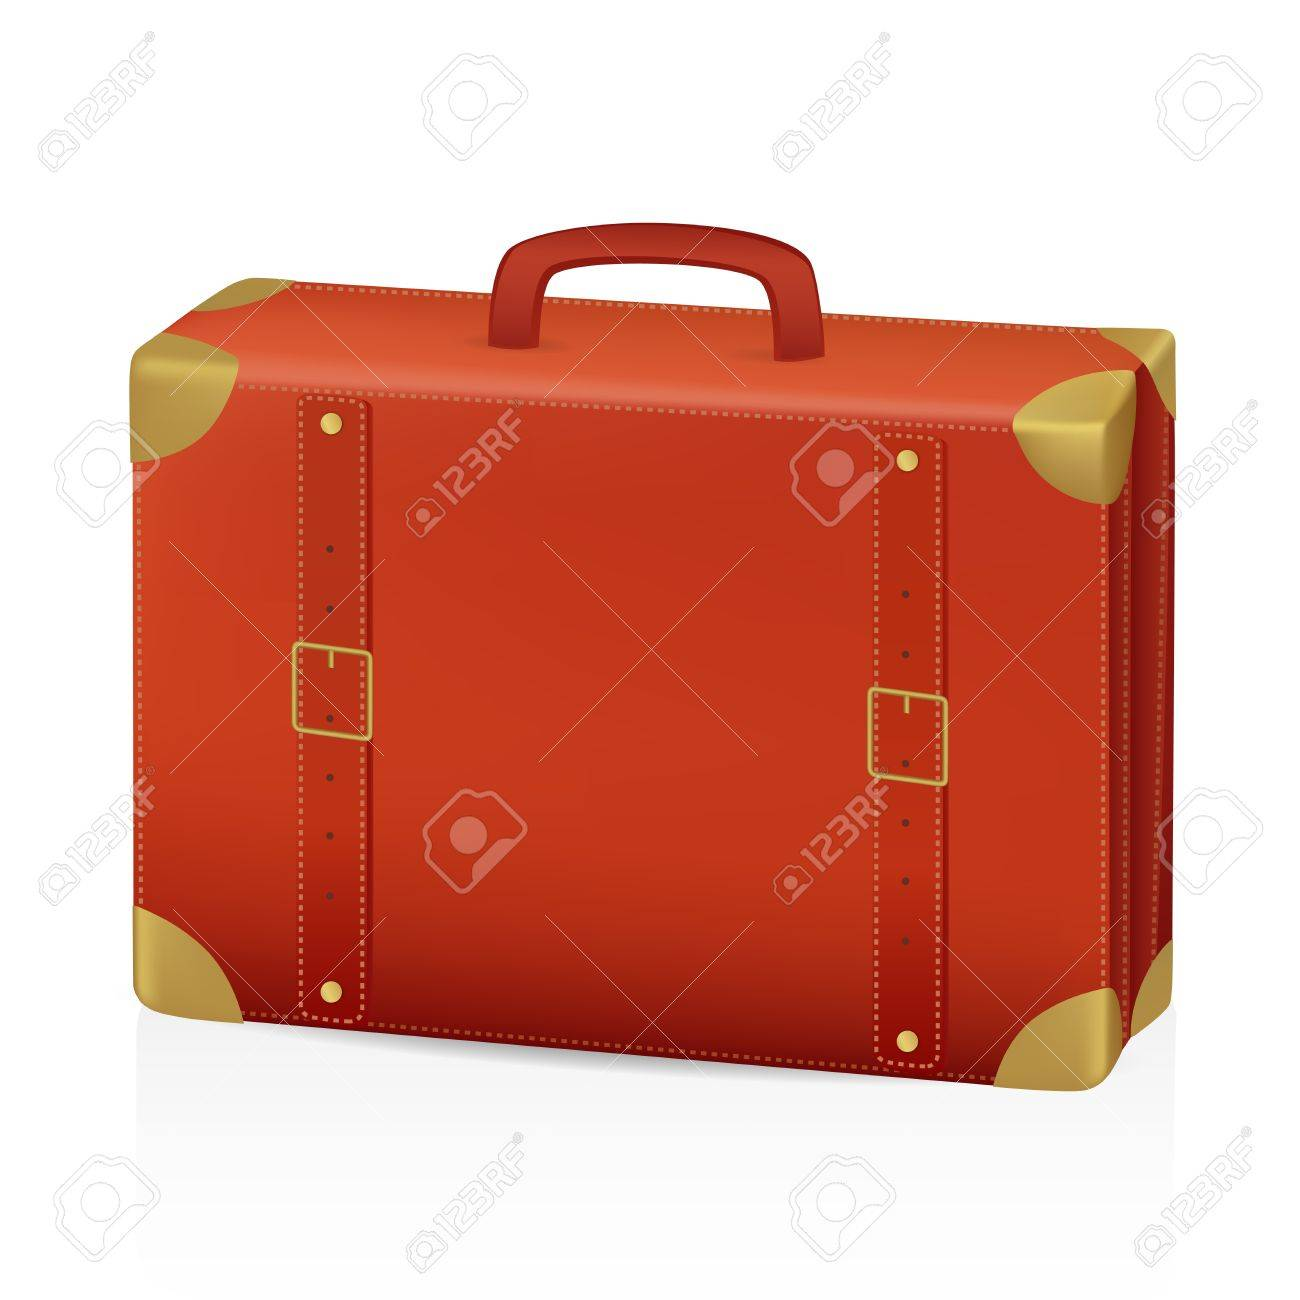 Old Suitcase Vector Illustration Royalty Free Cliparts, Vectors ...